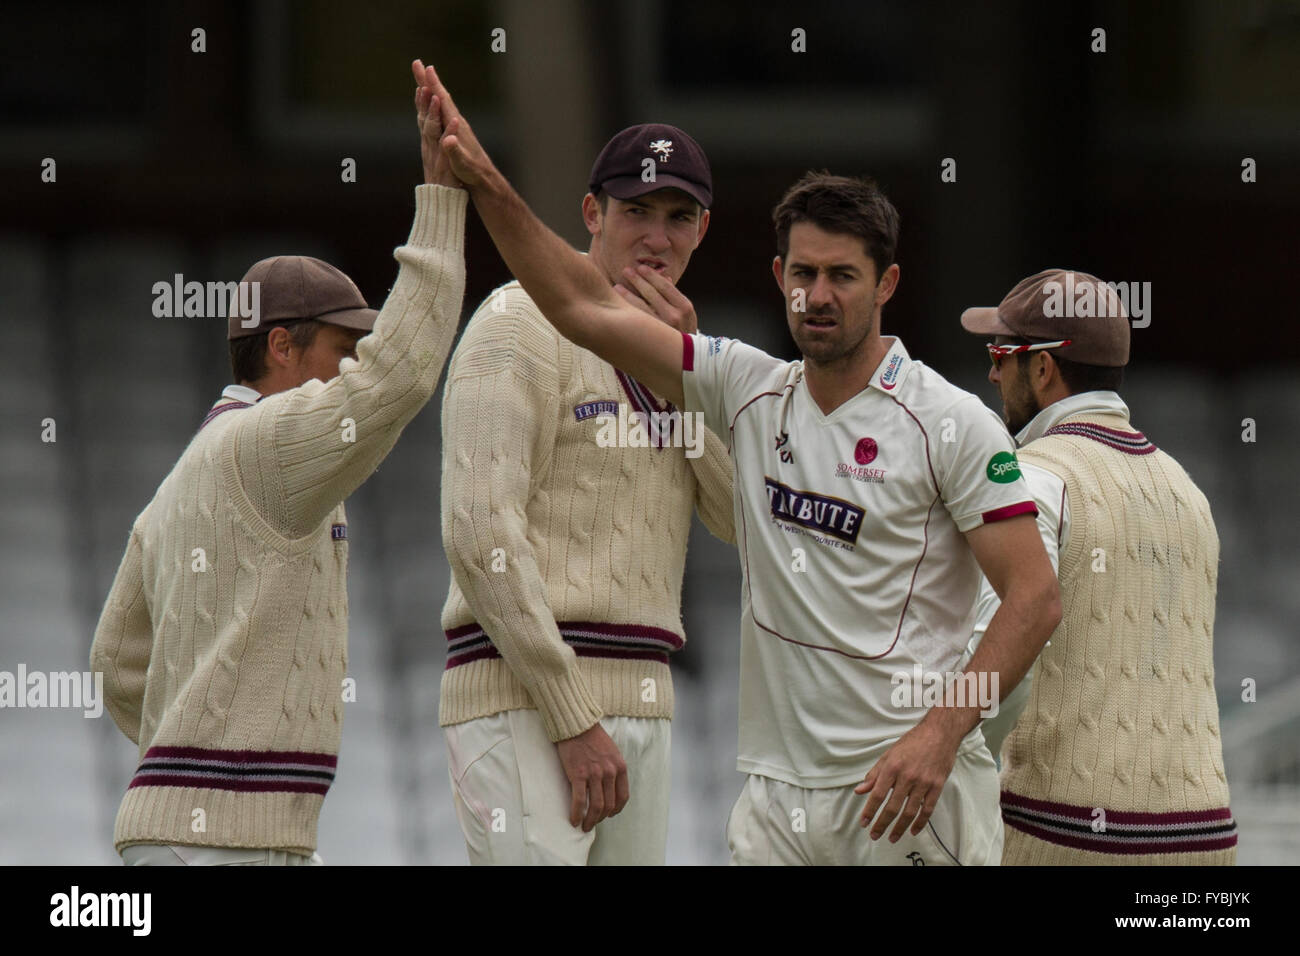 London, UK. 25 April 2016. Tim Groenewald gets a high-five from a team mate, after taking the wicket of Ben Foakes, - Stock Image